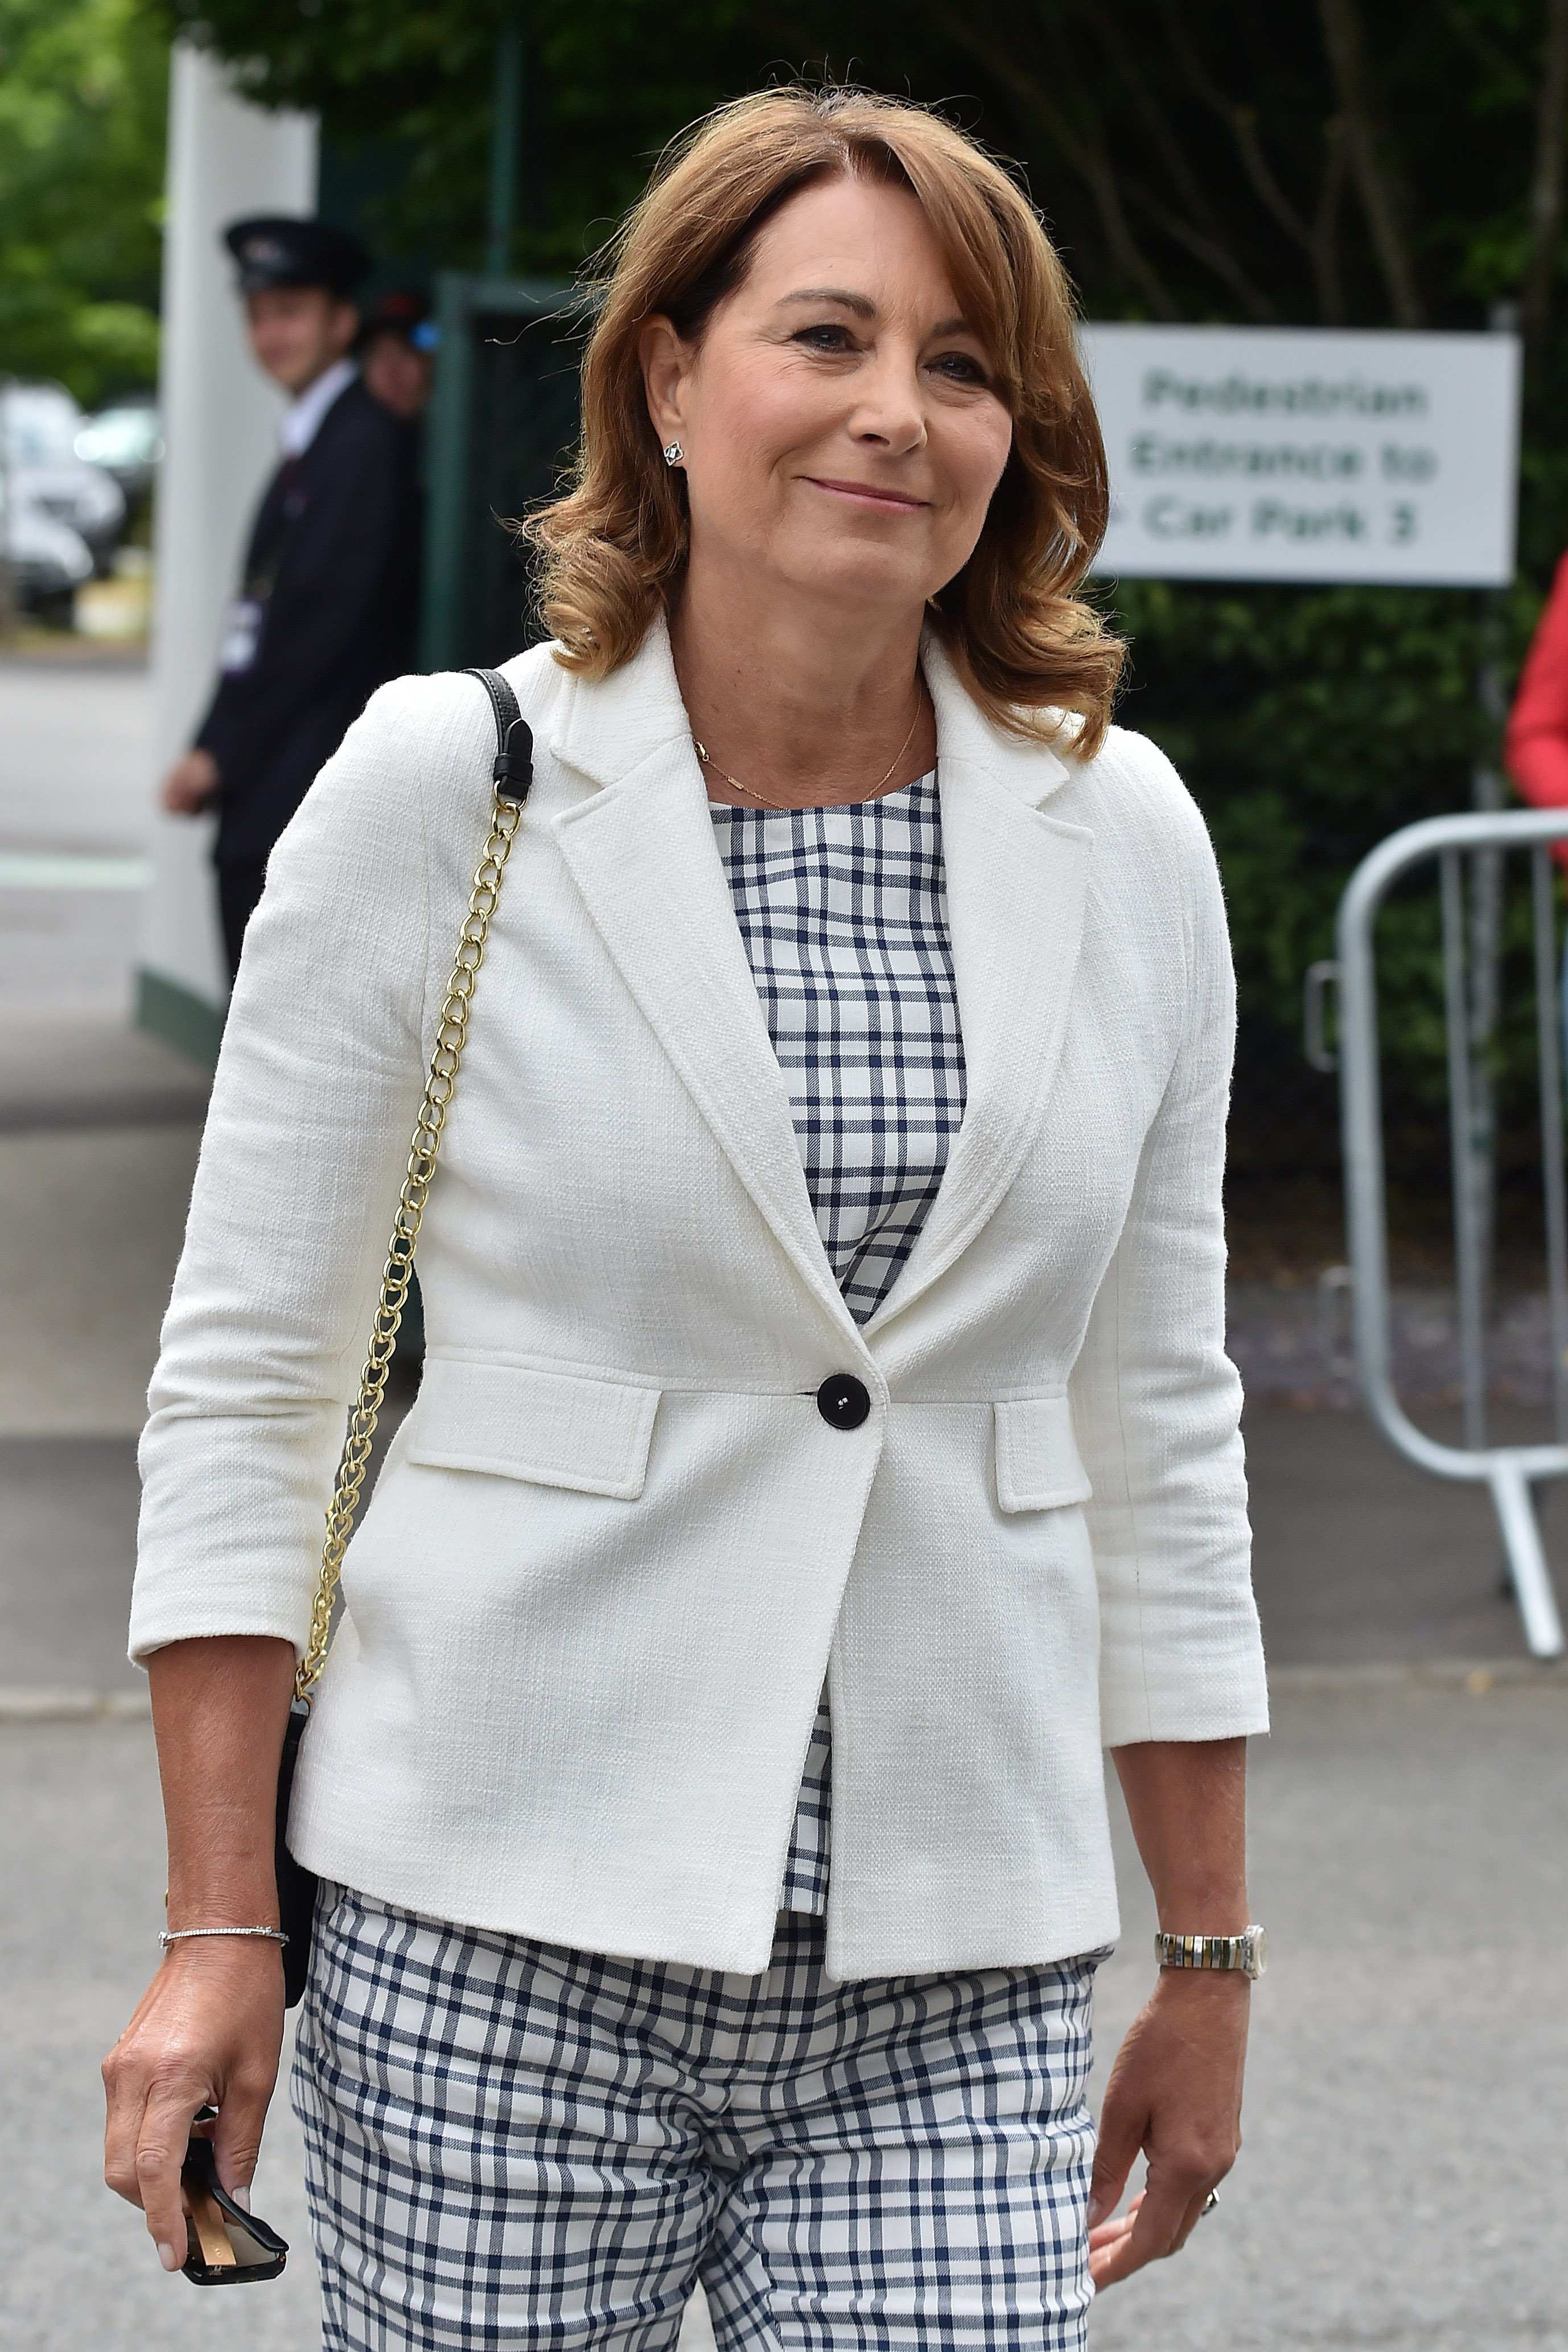 Carole Middleton at Wimbledon 2017 on July 14, 2017 in London, England | Photo: Getty Images